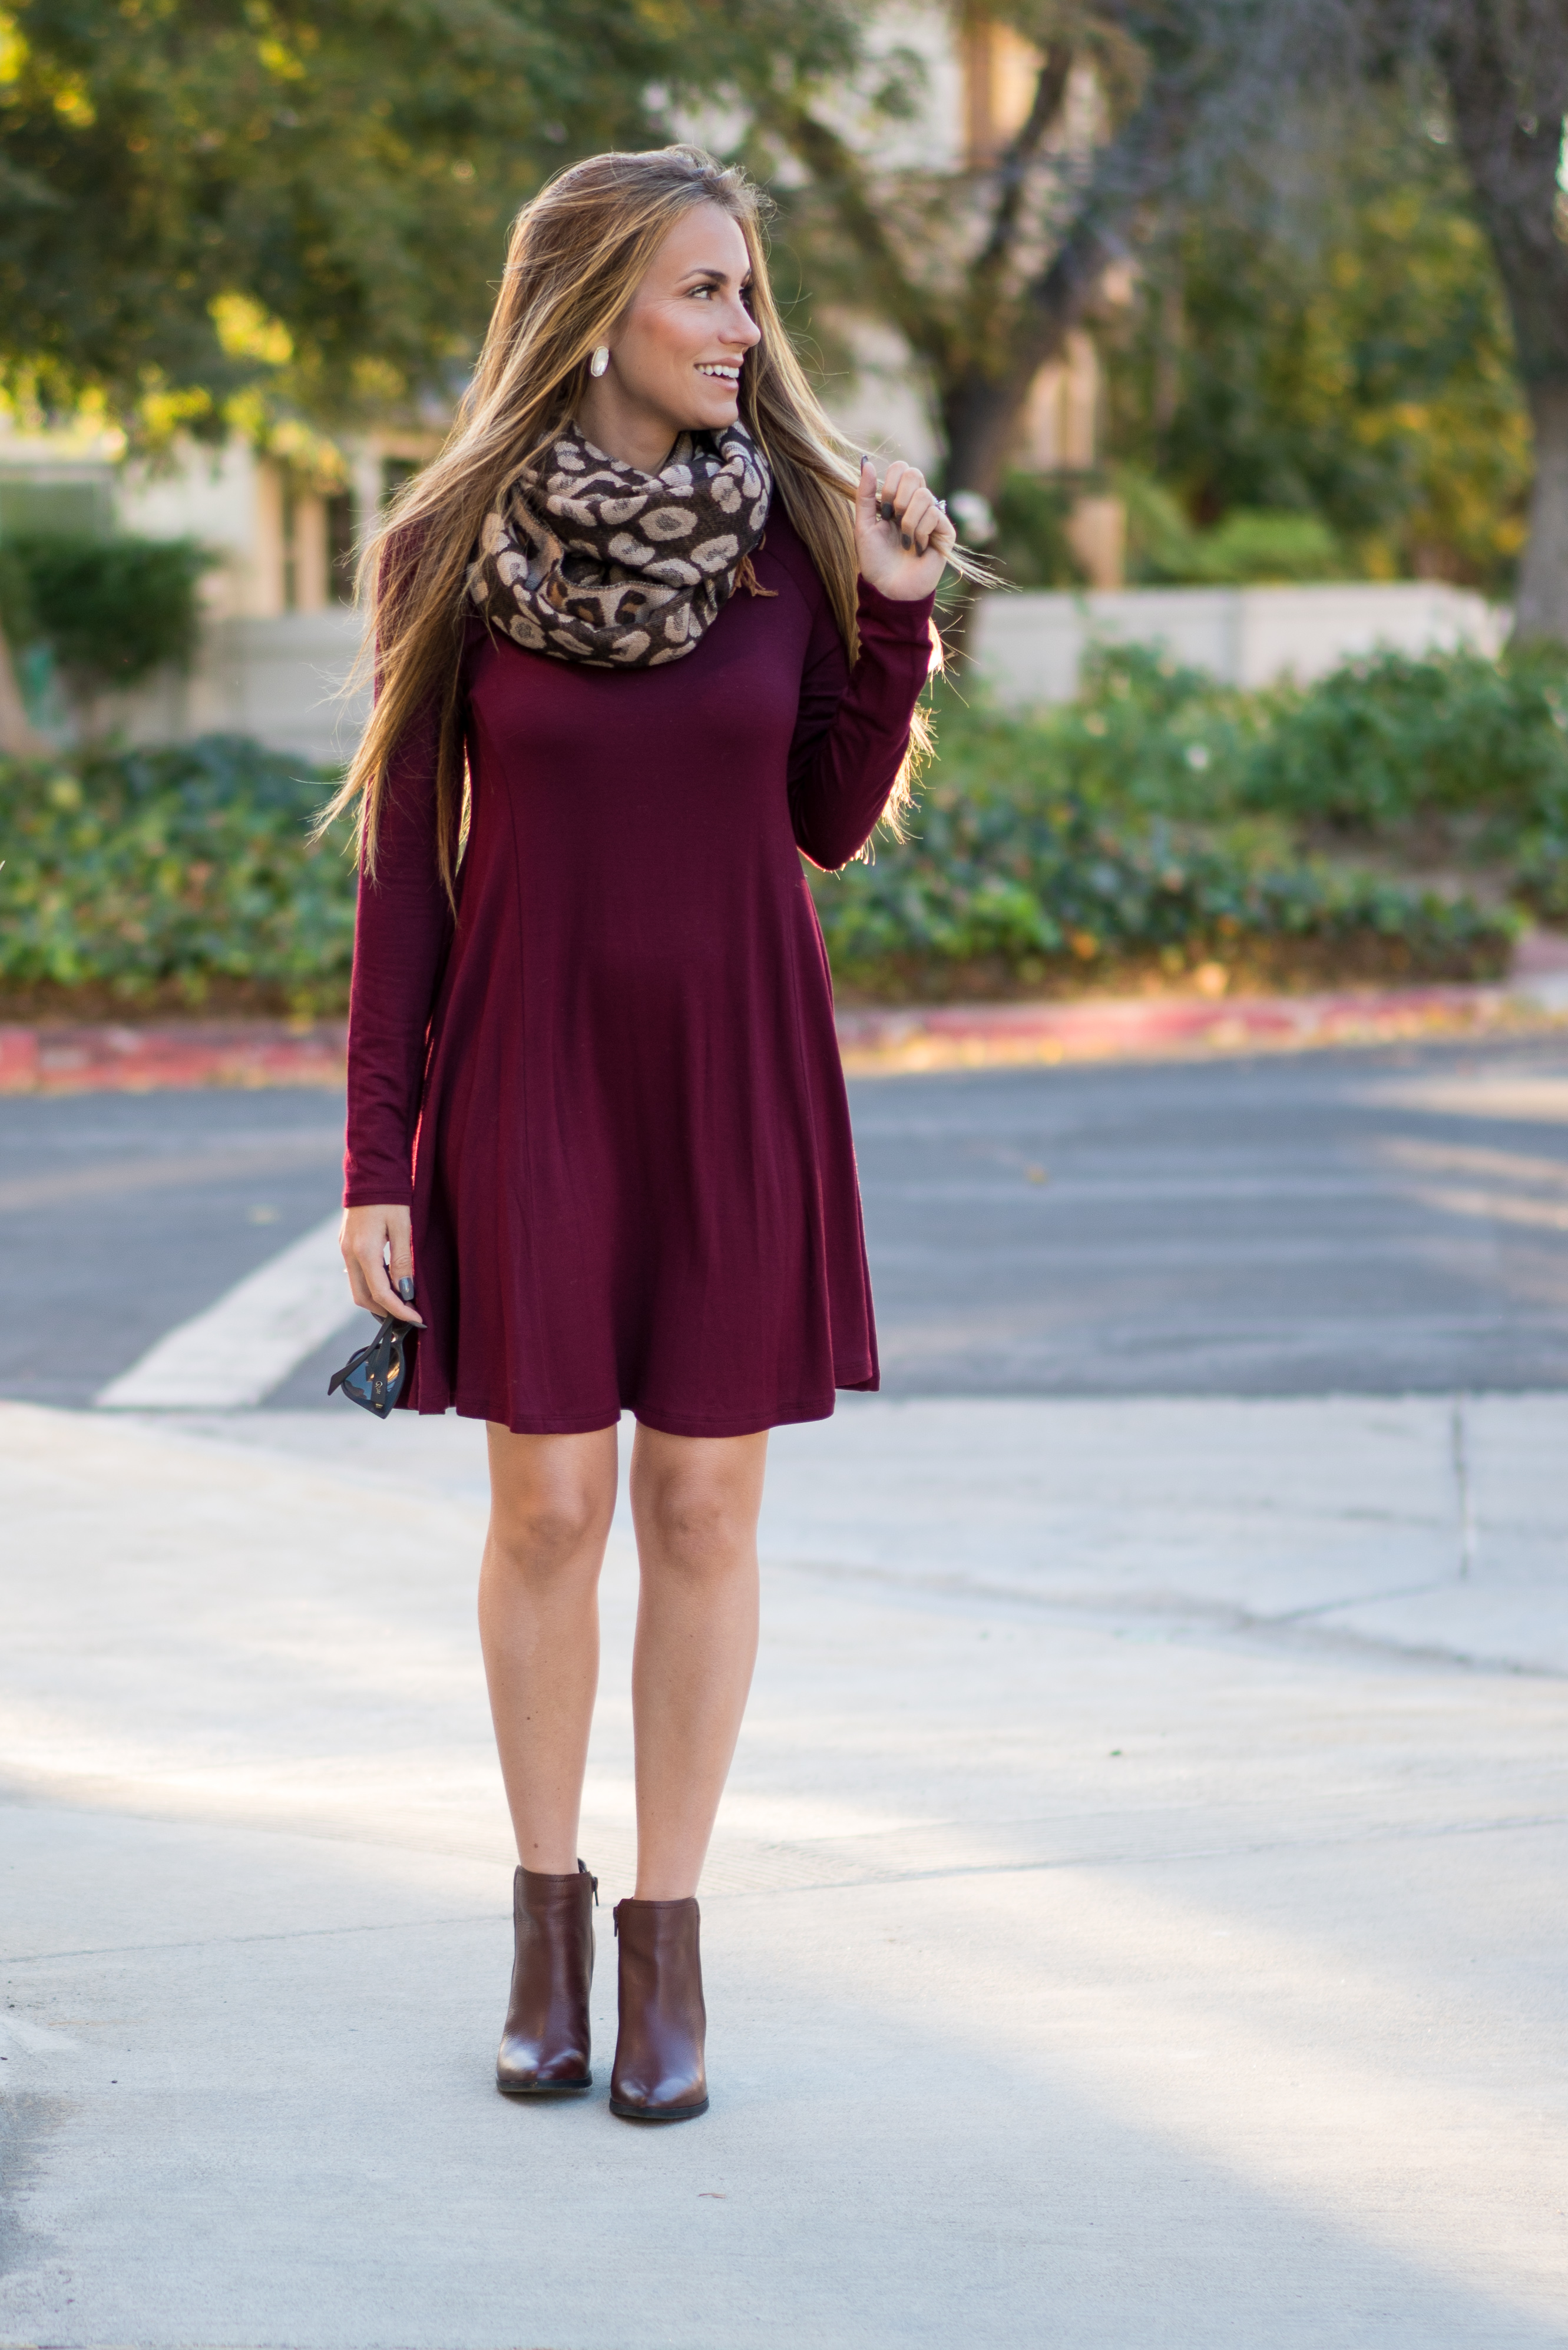 Burgundy Boots Hello Gorgeous By Angela Lanter